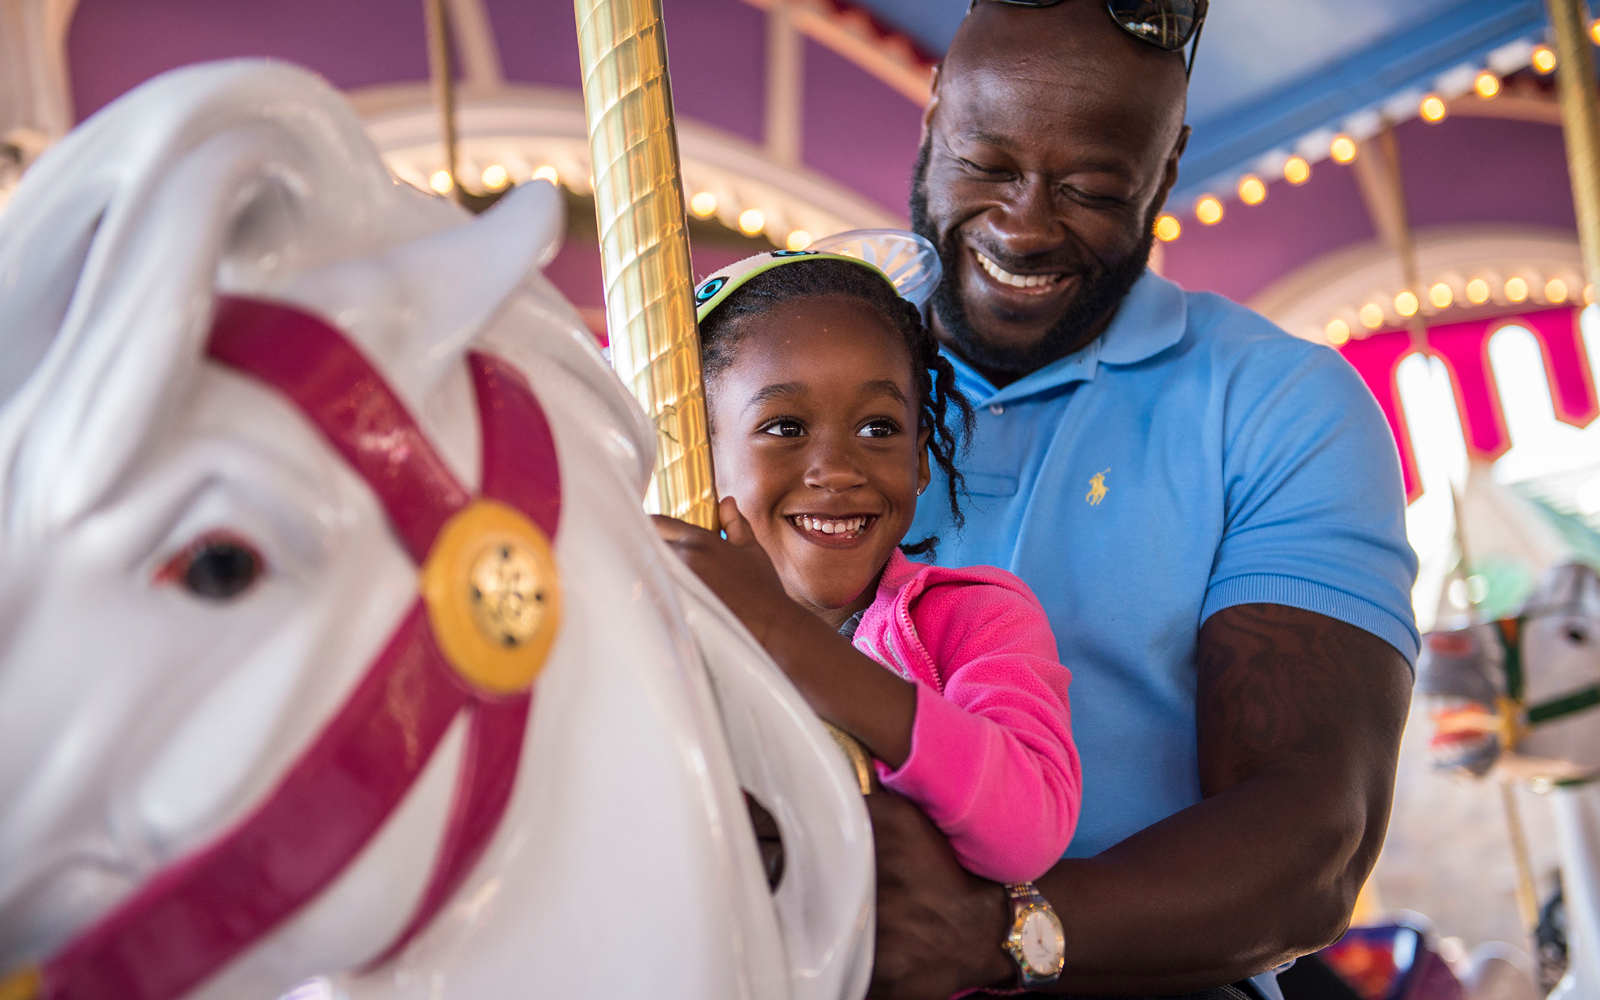 Black Father and Daughter on the Prince Charming Regal Carrousel in Disney World